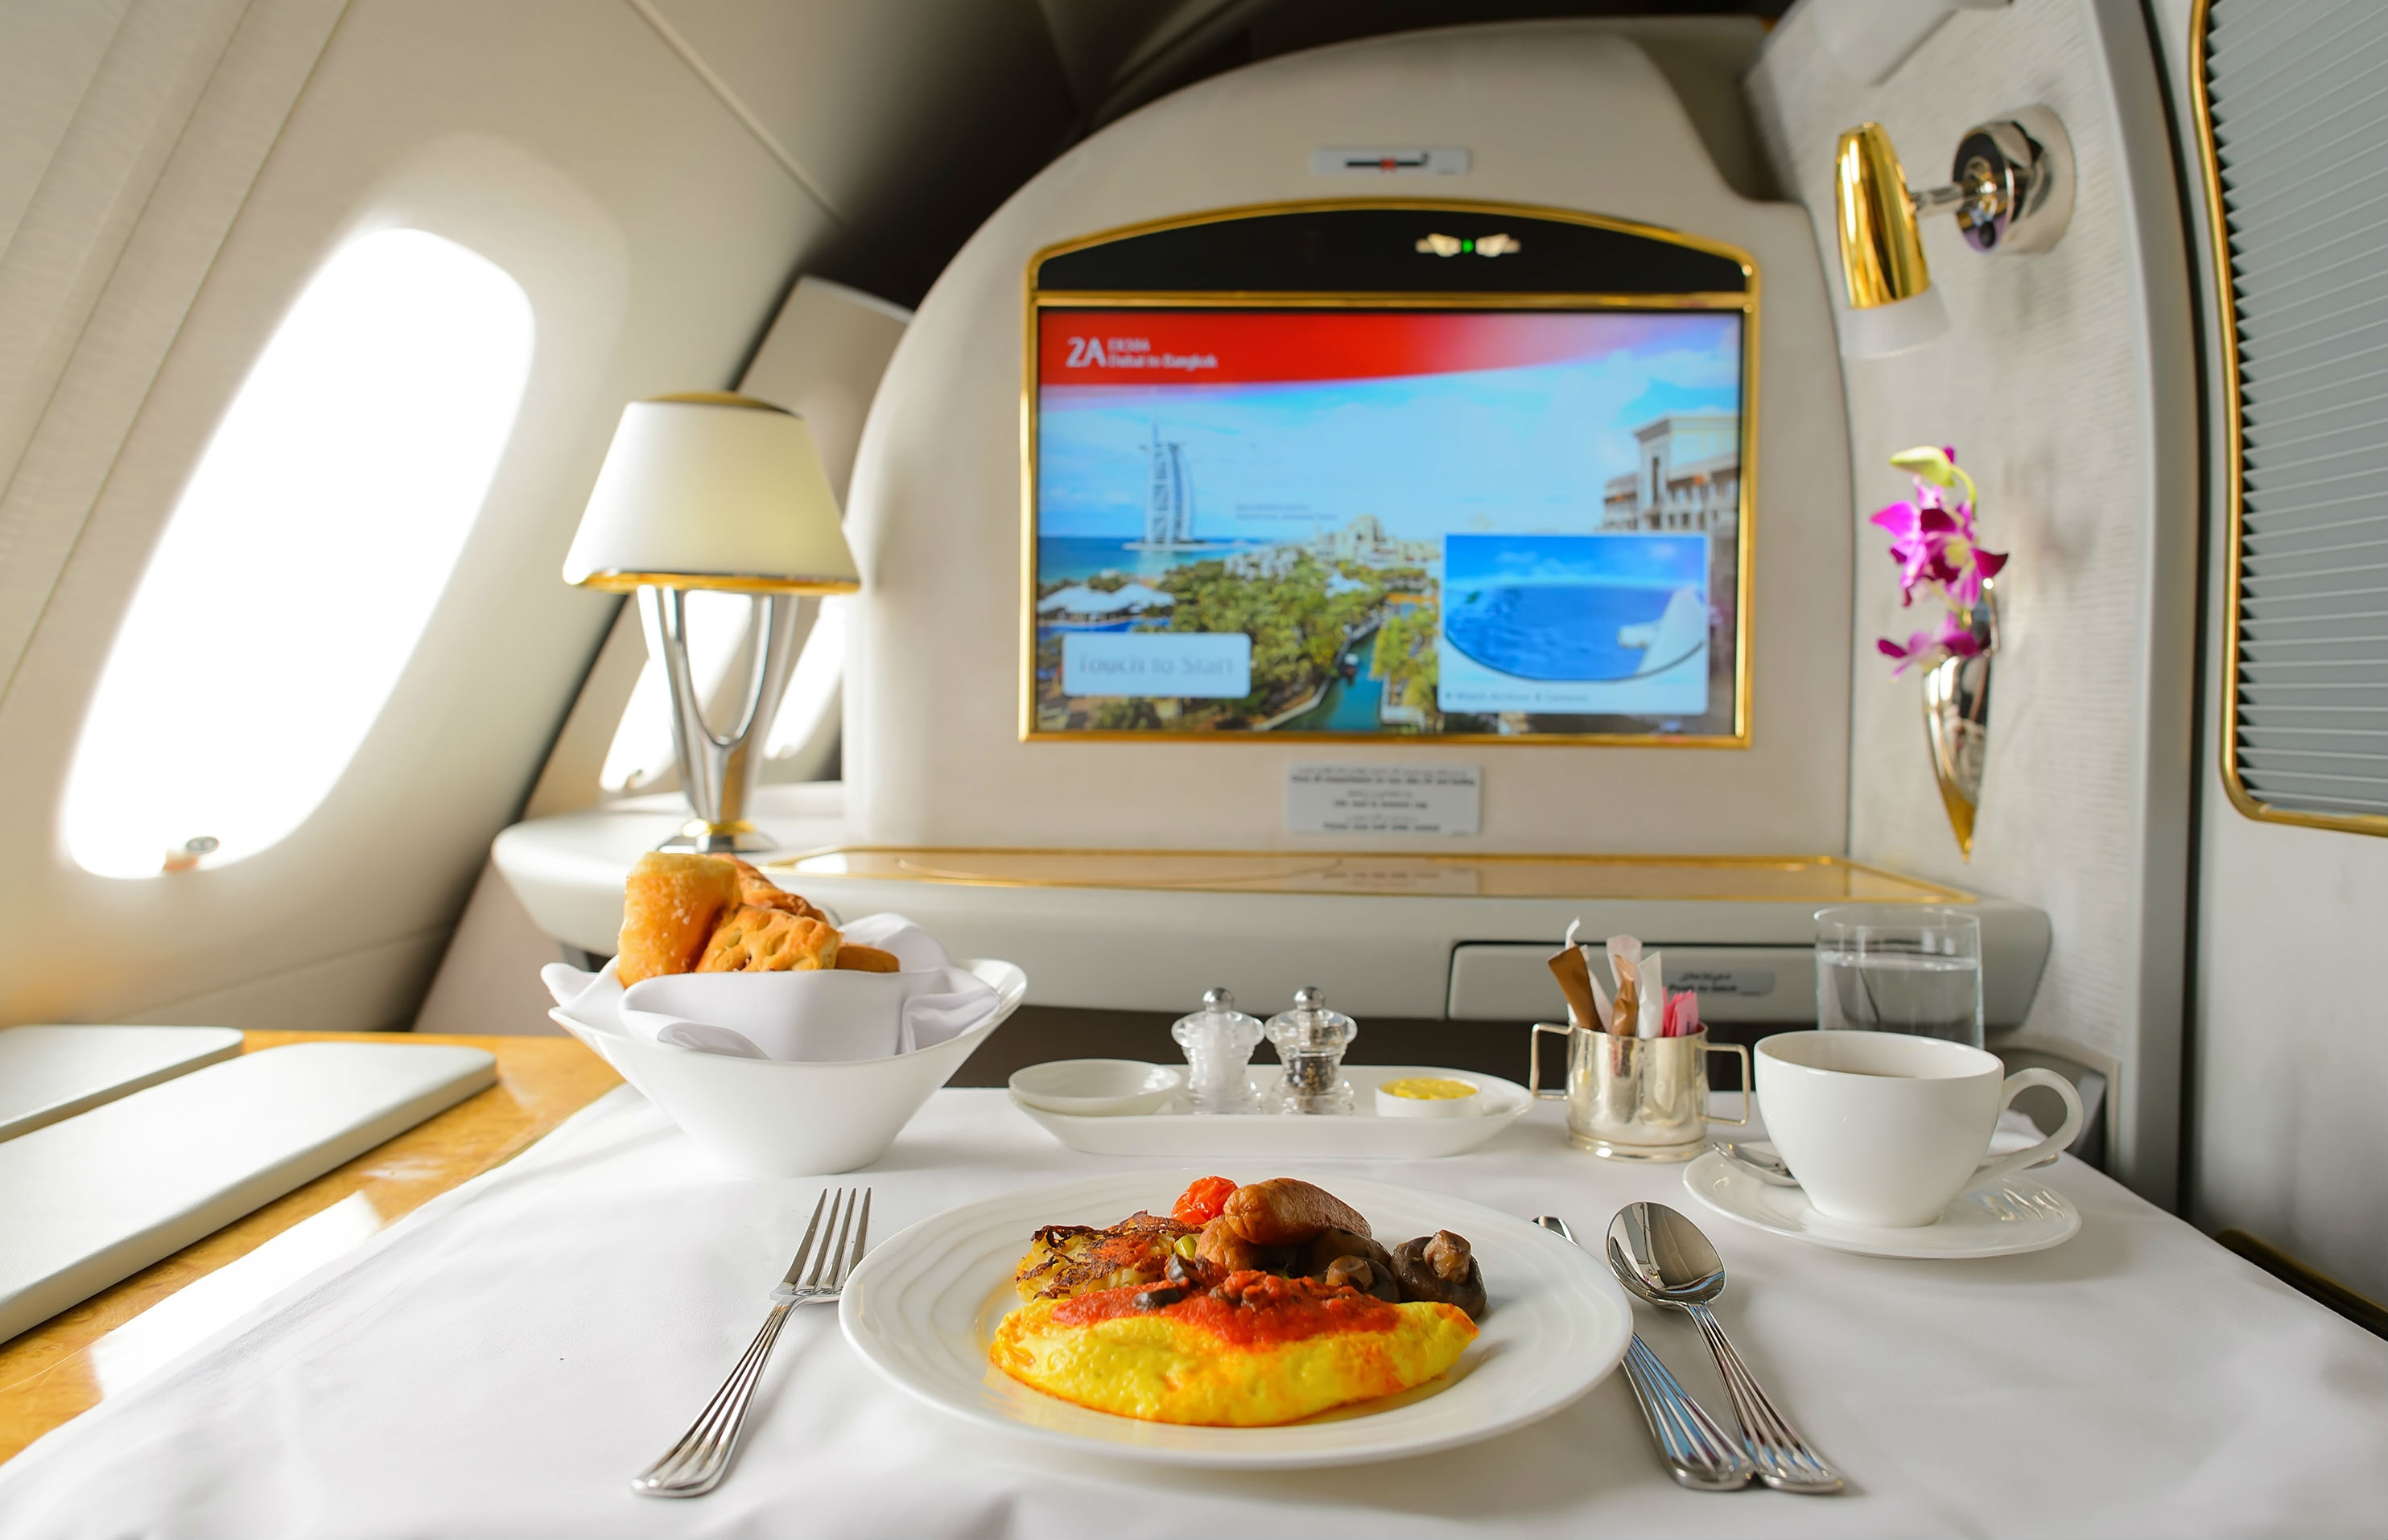 A first class cabin on Emirates Airlines (image: Shutterstock)